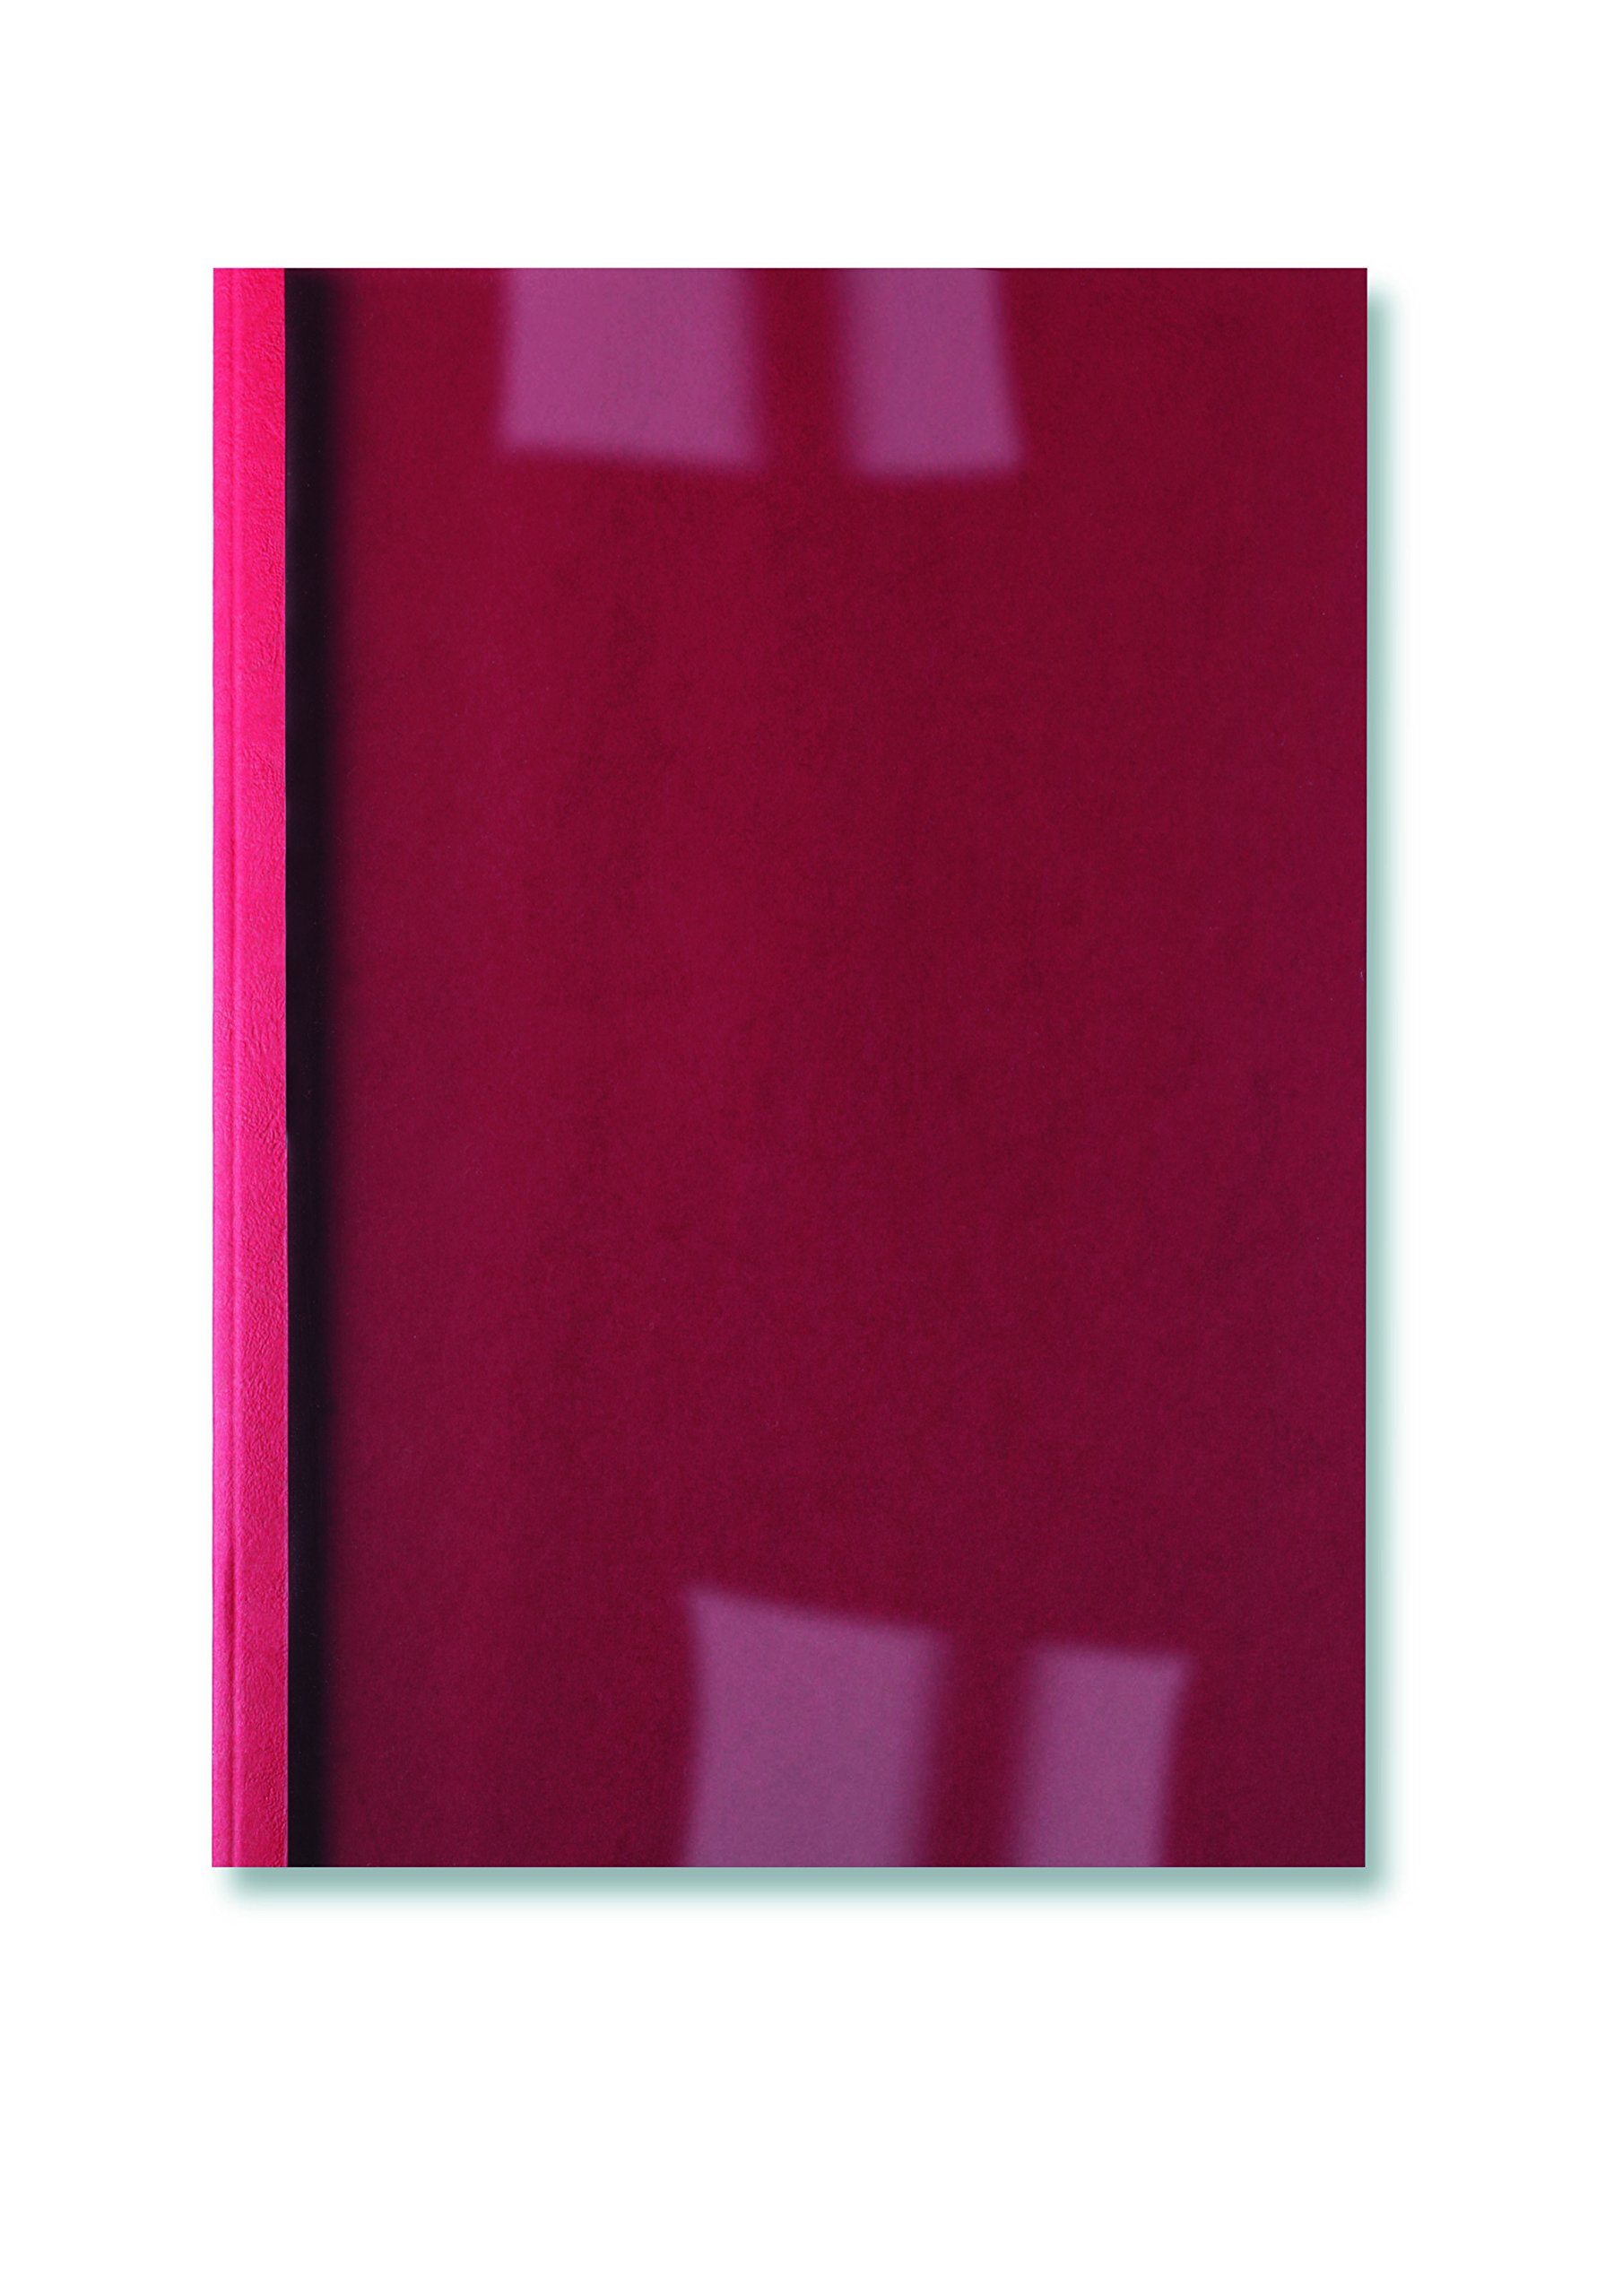 GBC Thermal Binding Covers 4mm Front PVC Clear Back Leathergrain A4 Red Ref IB451225 [Pack of 100]